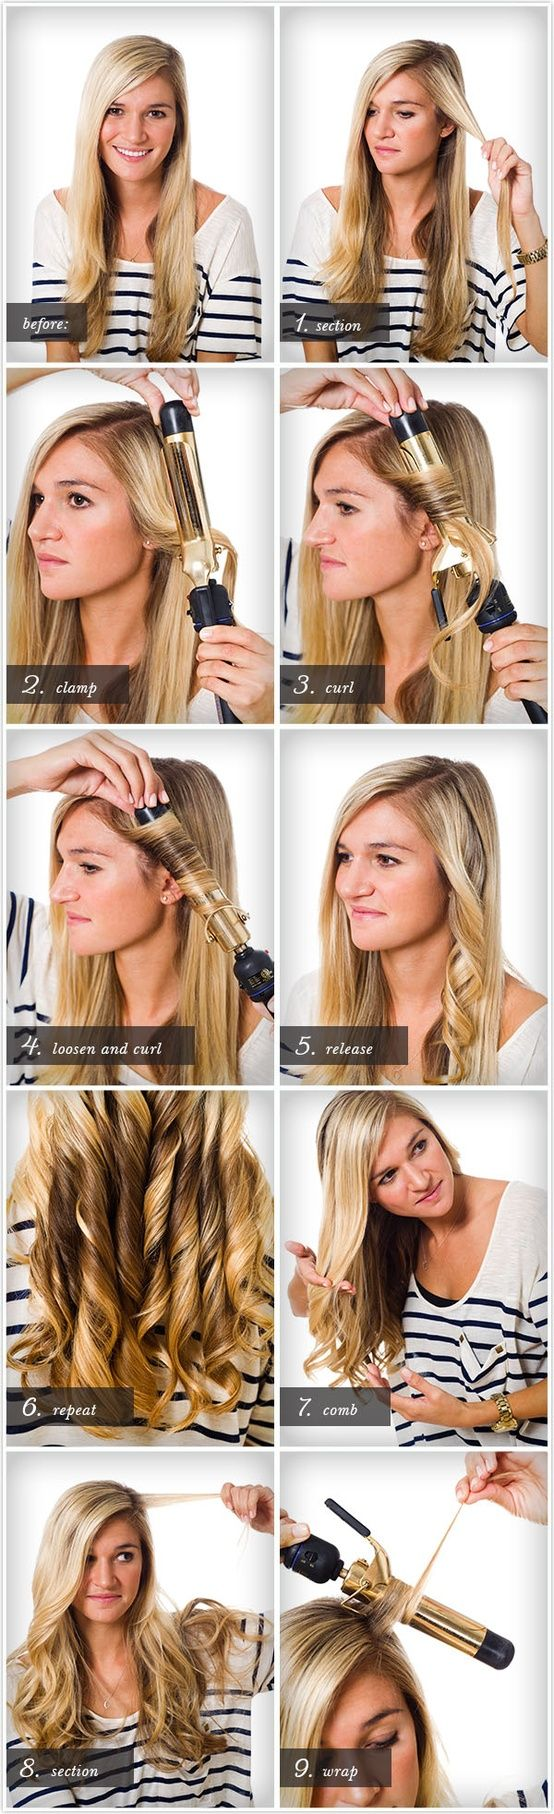 Hair Curling Tutorial   Martha Lynn Kale for Camille Styles - The Beauty Thesis